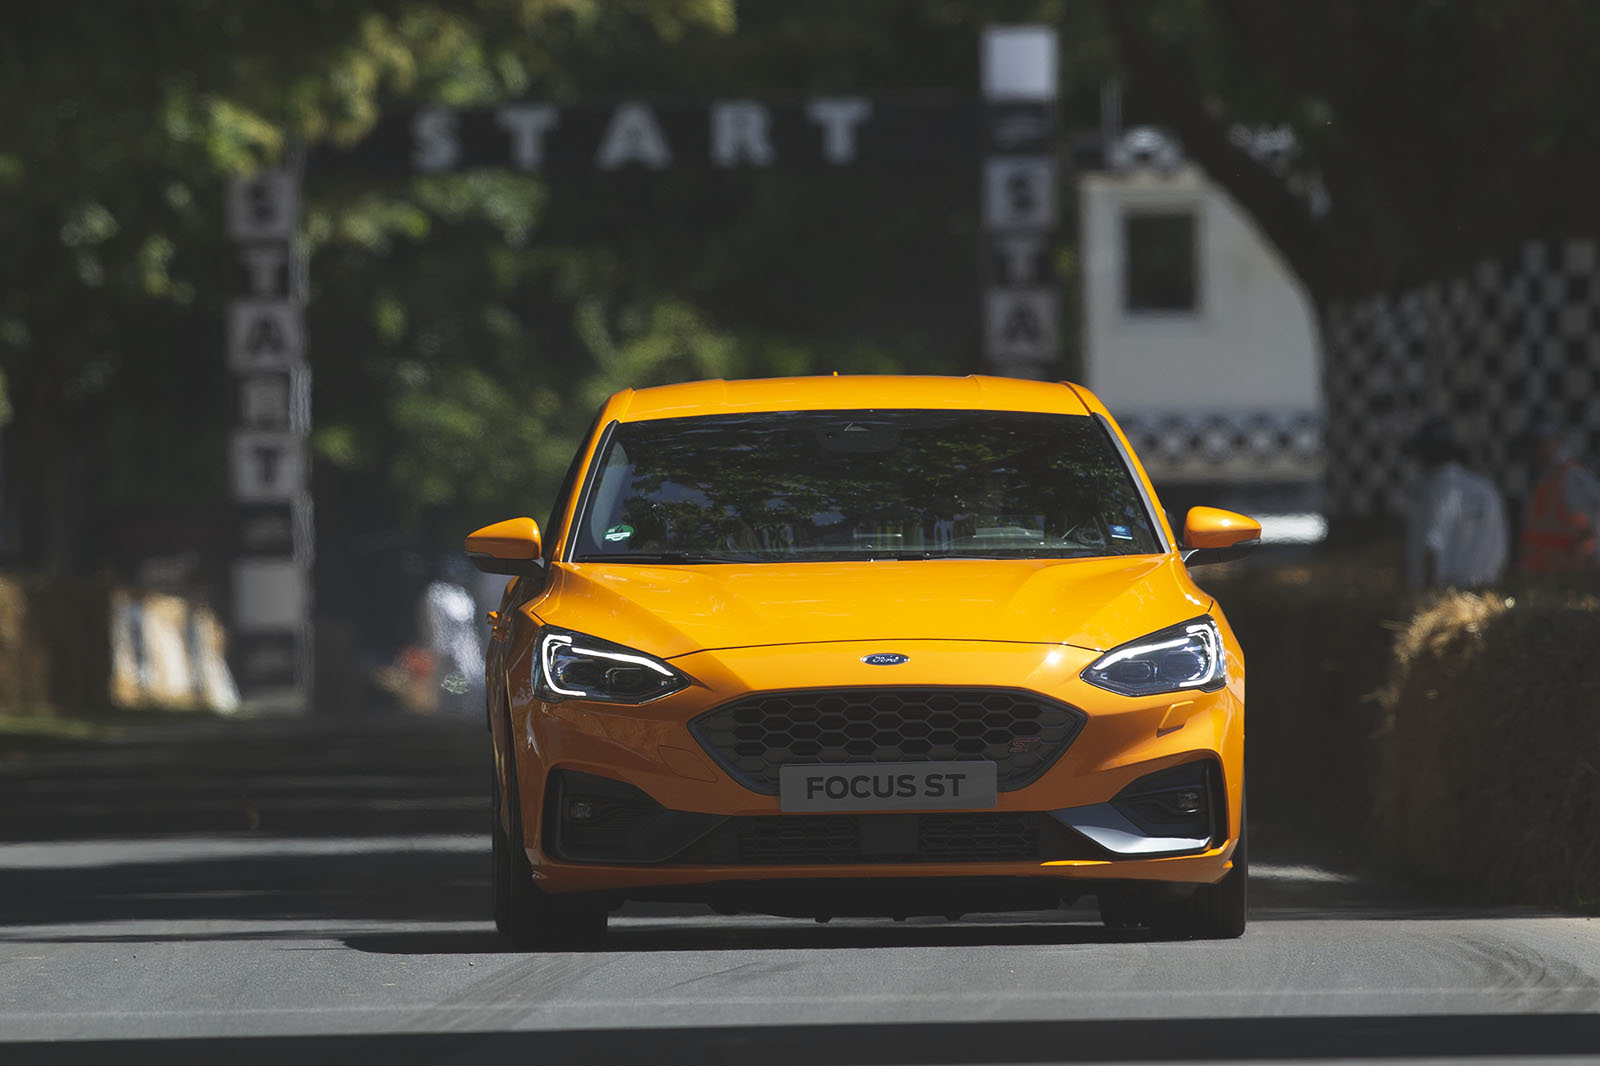 hight resolution of new ford focus st priced from under 30 000 in uk